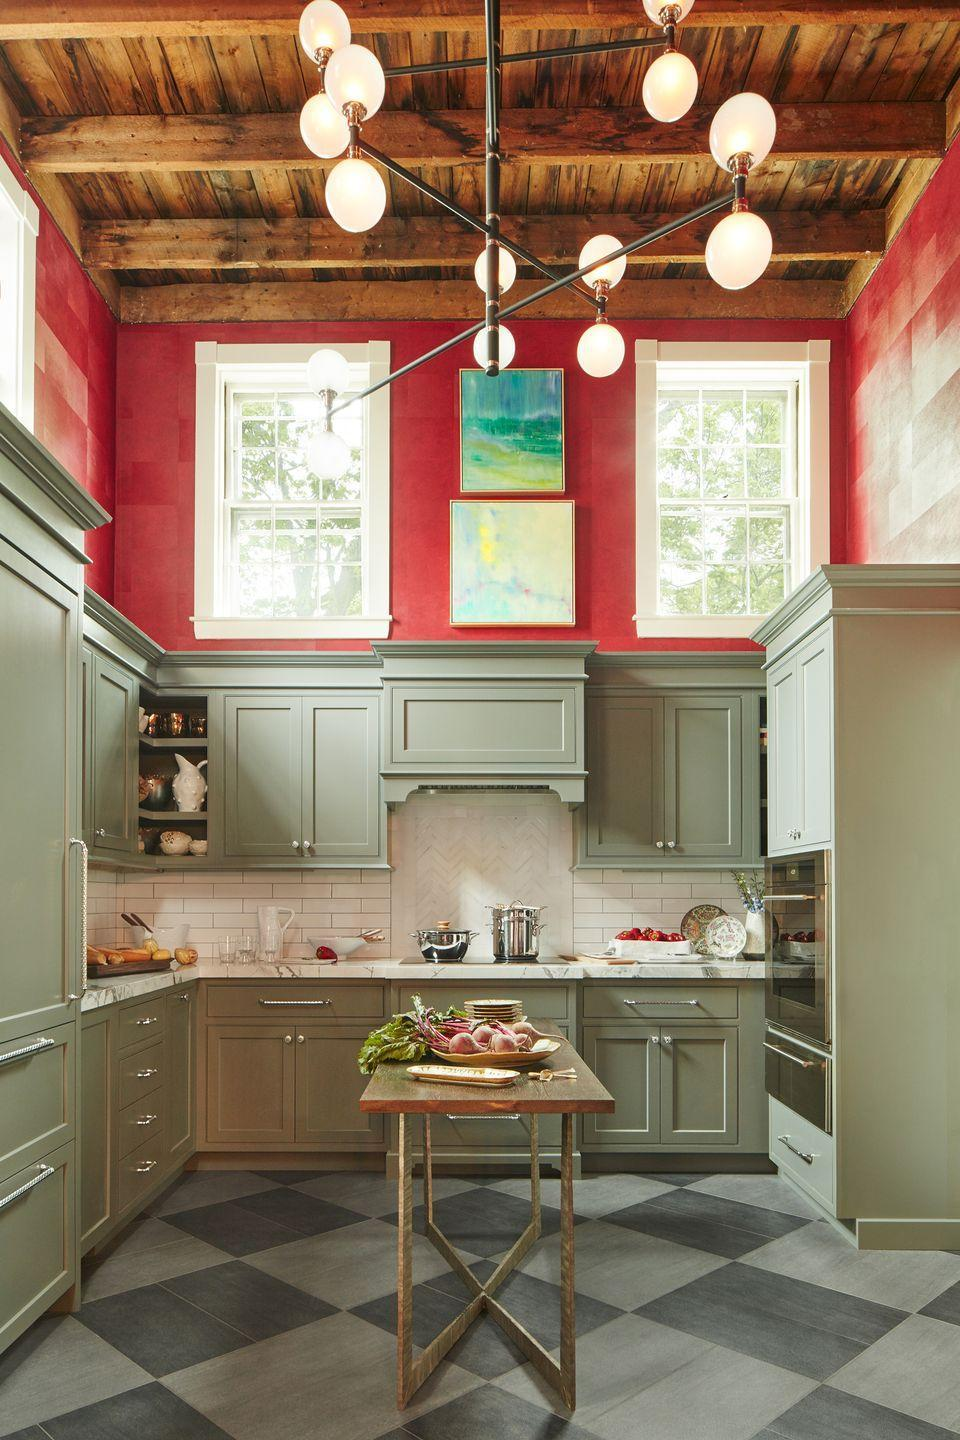 "<p>This charming old-school kitchen by <a href=""https://vanisayeedstudios.com/"" rel=""nofollow noopener"" target=""_blank"" data-ylk=""slk:Vani Sayeed Studios"" class=""link rapid-noclick-resp"">Vani Sayeed Studios</a> is well-balanced with a stunning, modern chandelier that draws the eye all the way up the room's enviably high ceilings. Resting above the kitchen's preferred prep station, this fixture brightens up the area for the whole family to join in on making dinner or brunch. </p>"